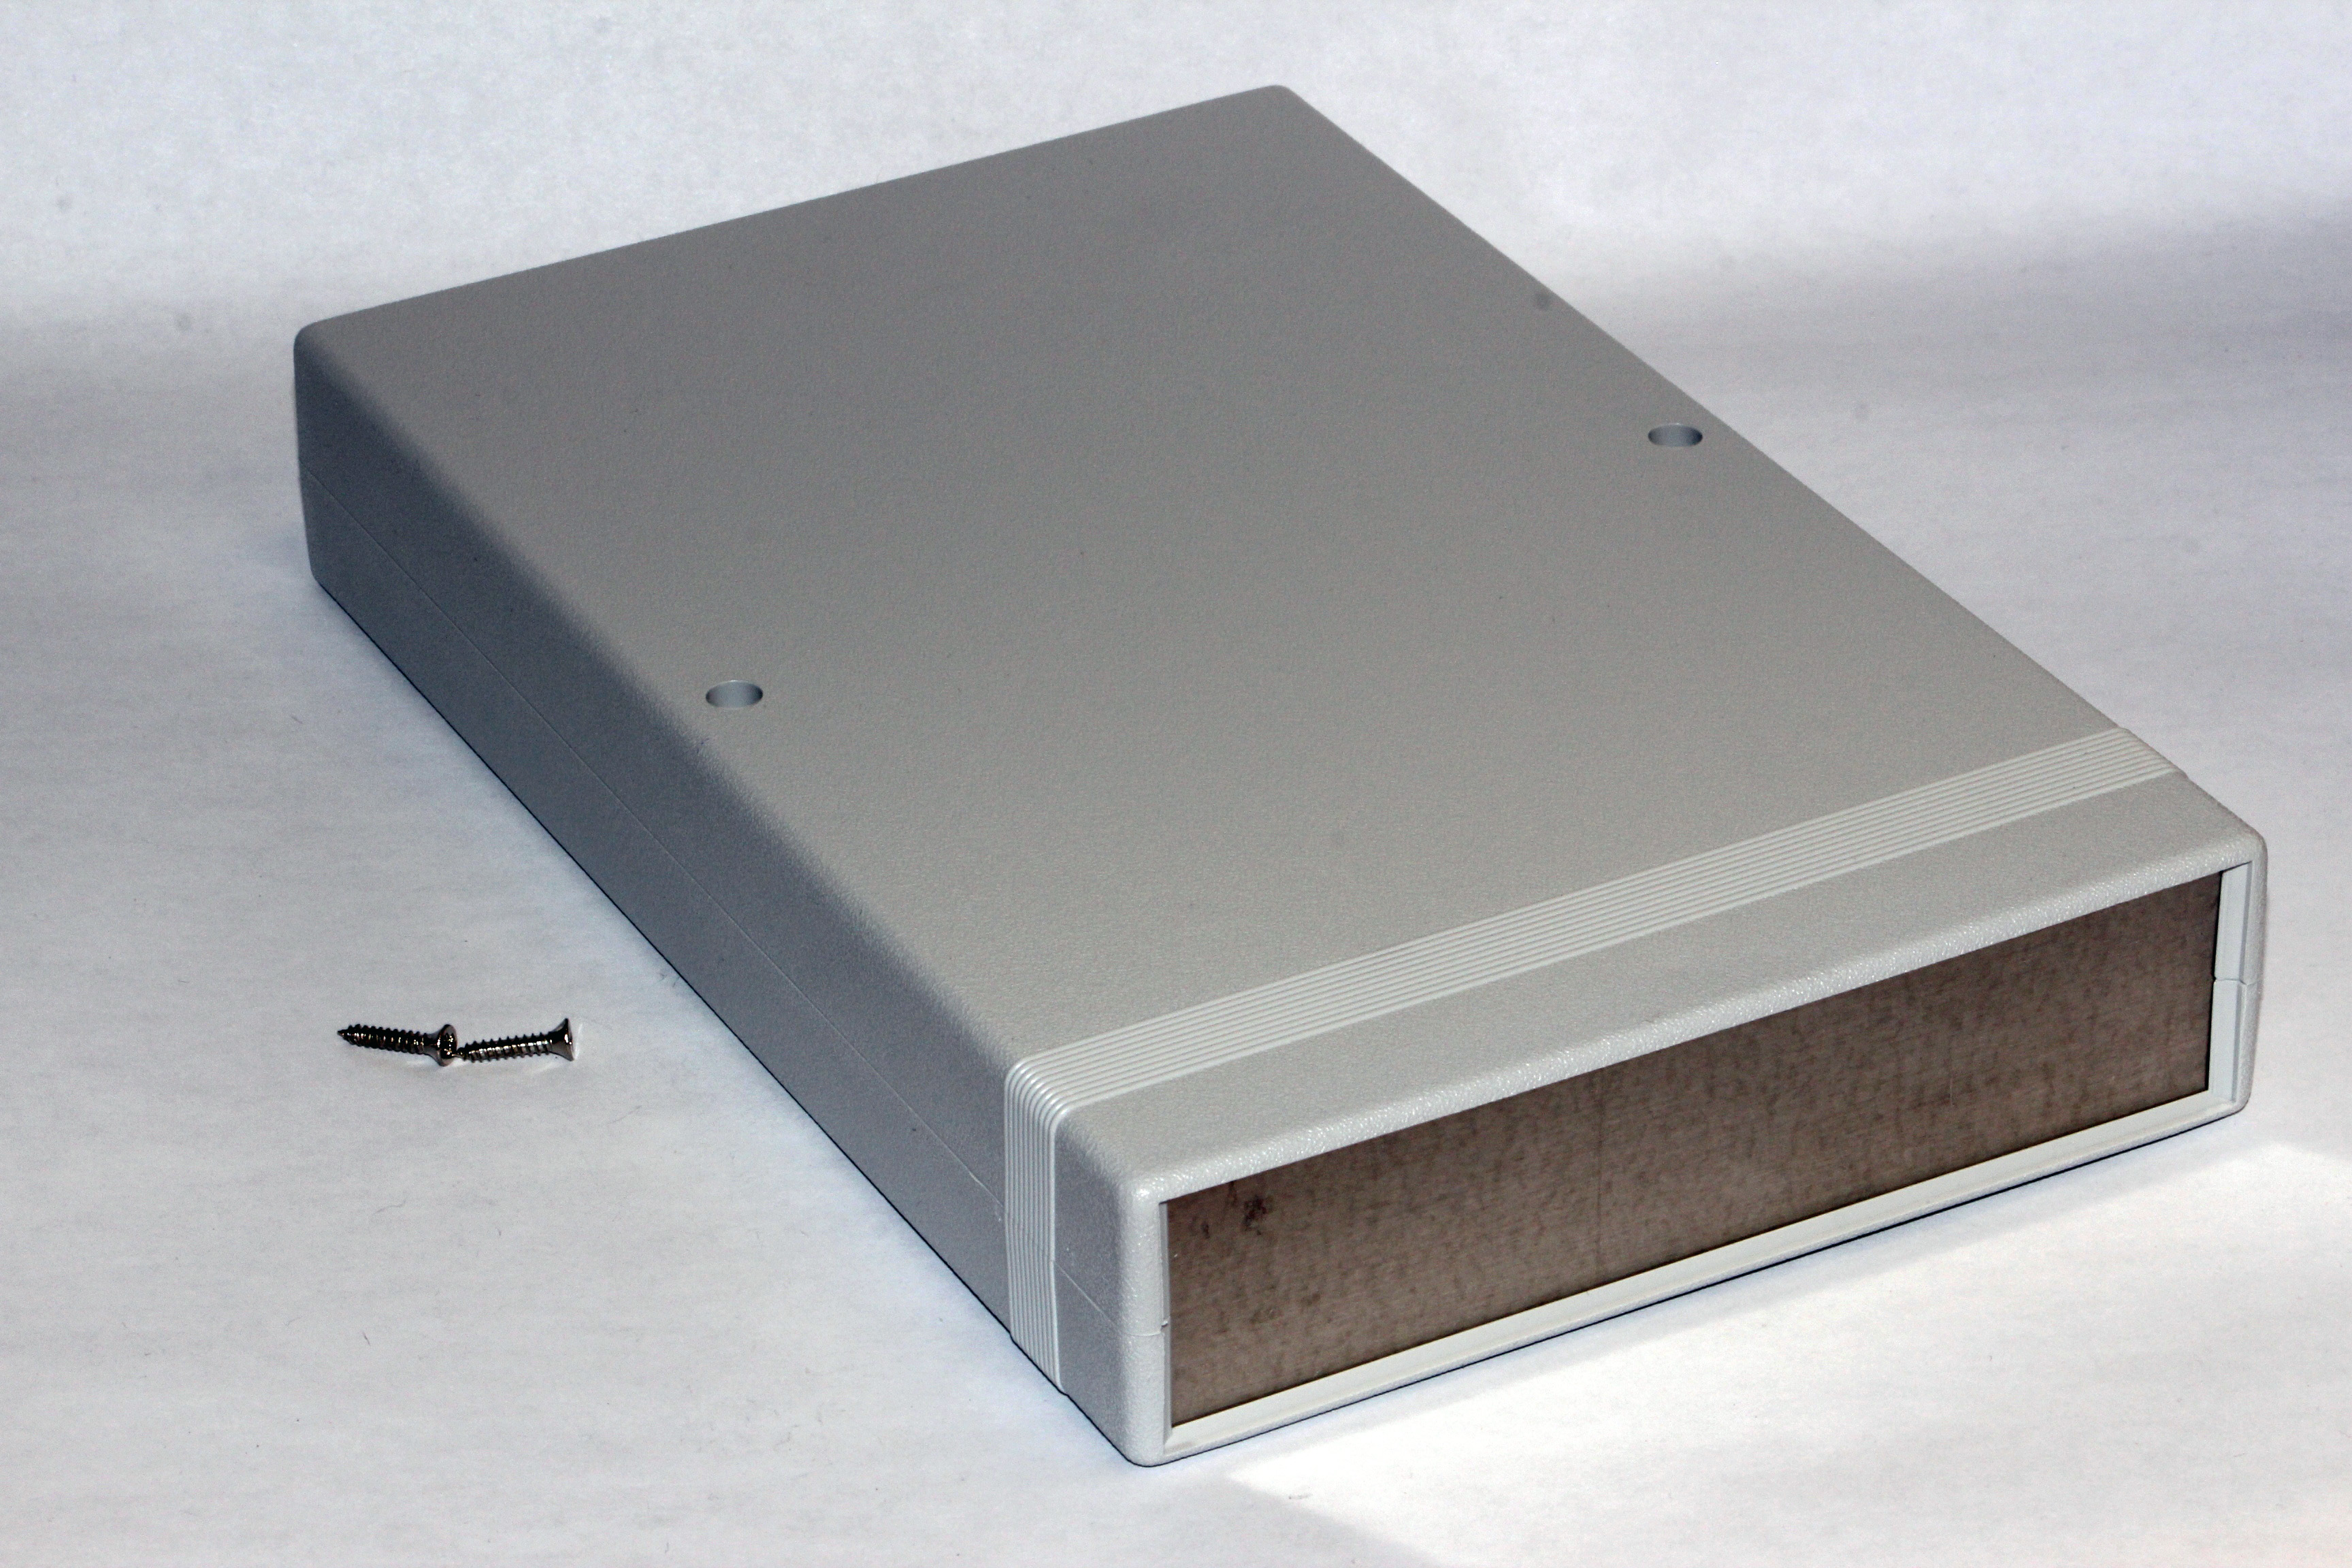 1598FSGY - 1598 Series ABS Plastic Instrument Enclosures with Clam Shell Body and End Panels